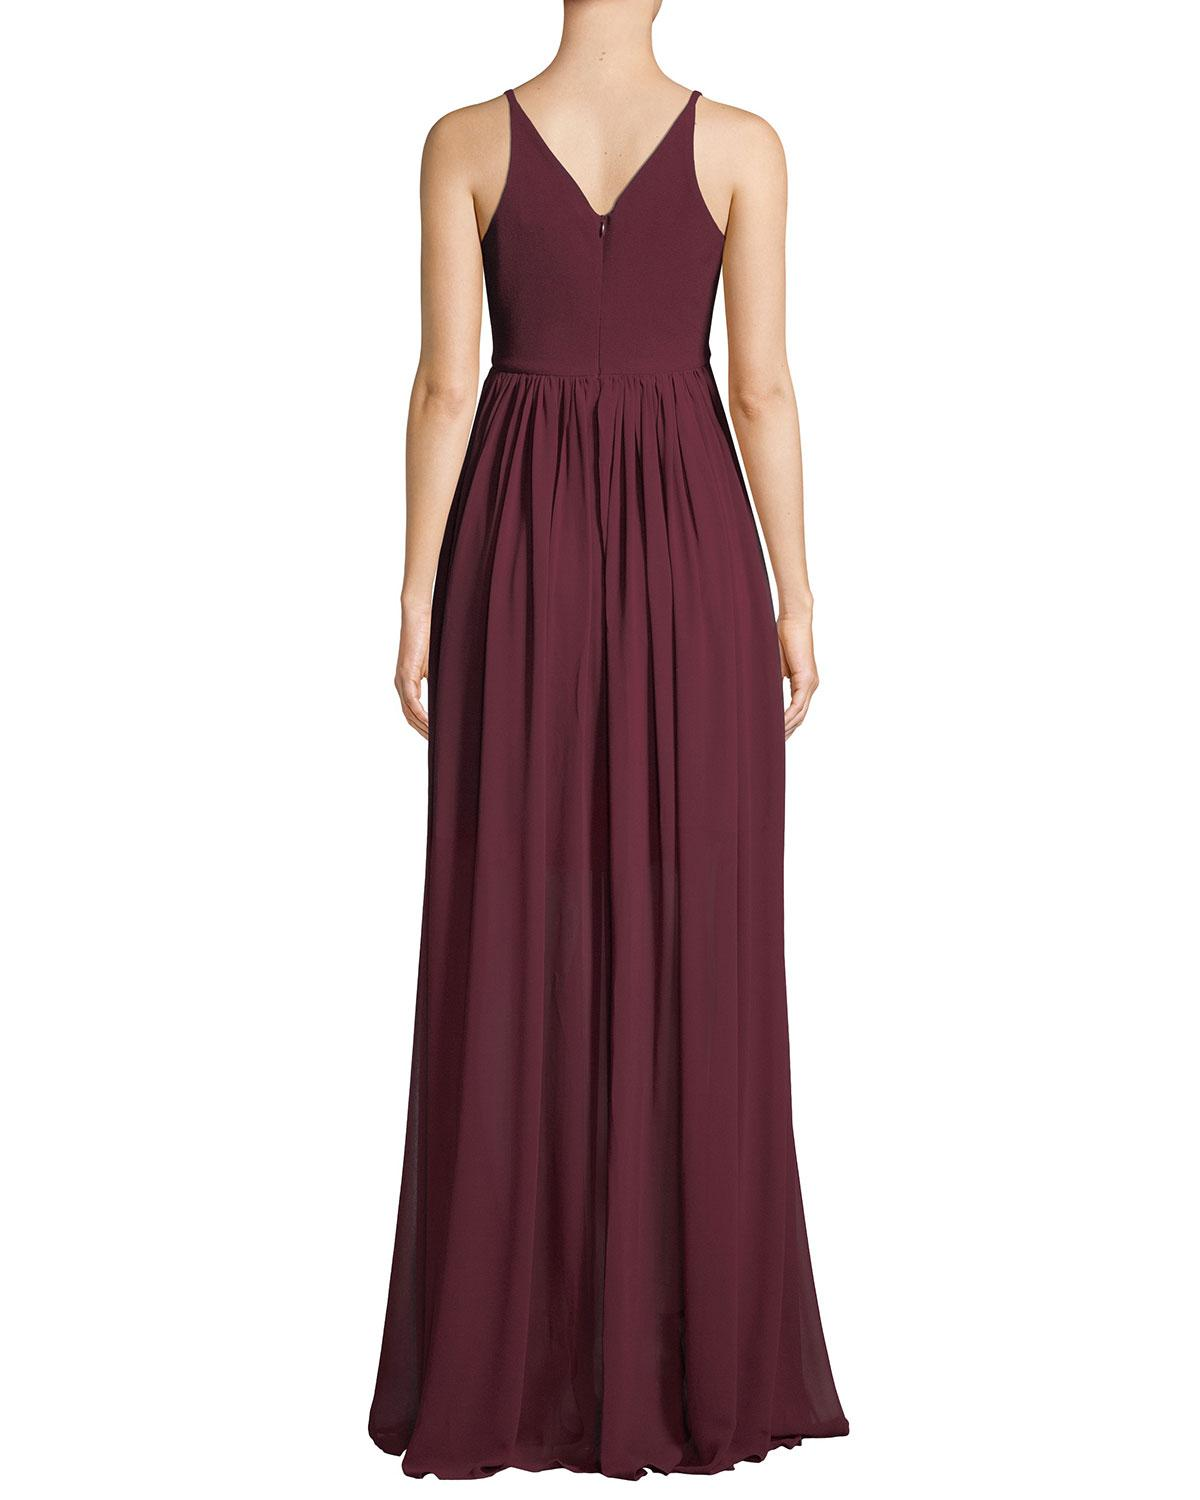 2b7c8d35c53 Lyst - Dress the Population Phoebe V-neck Sleeveless Empire Gown in Purple